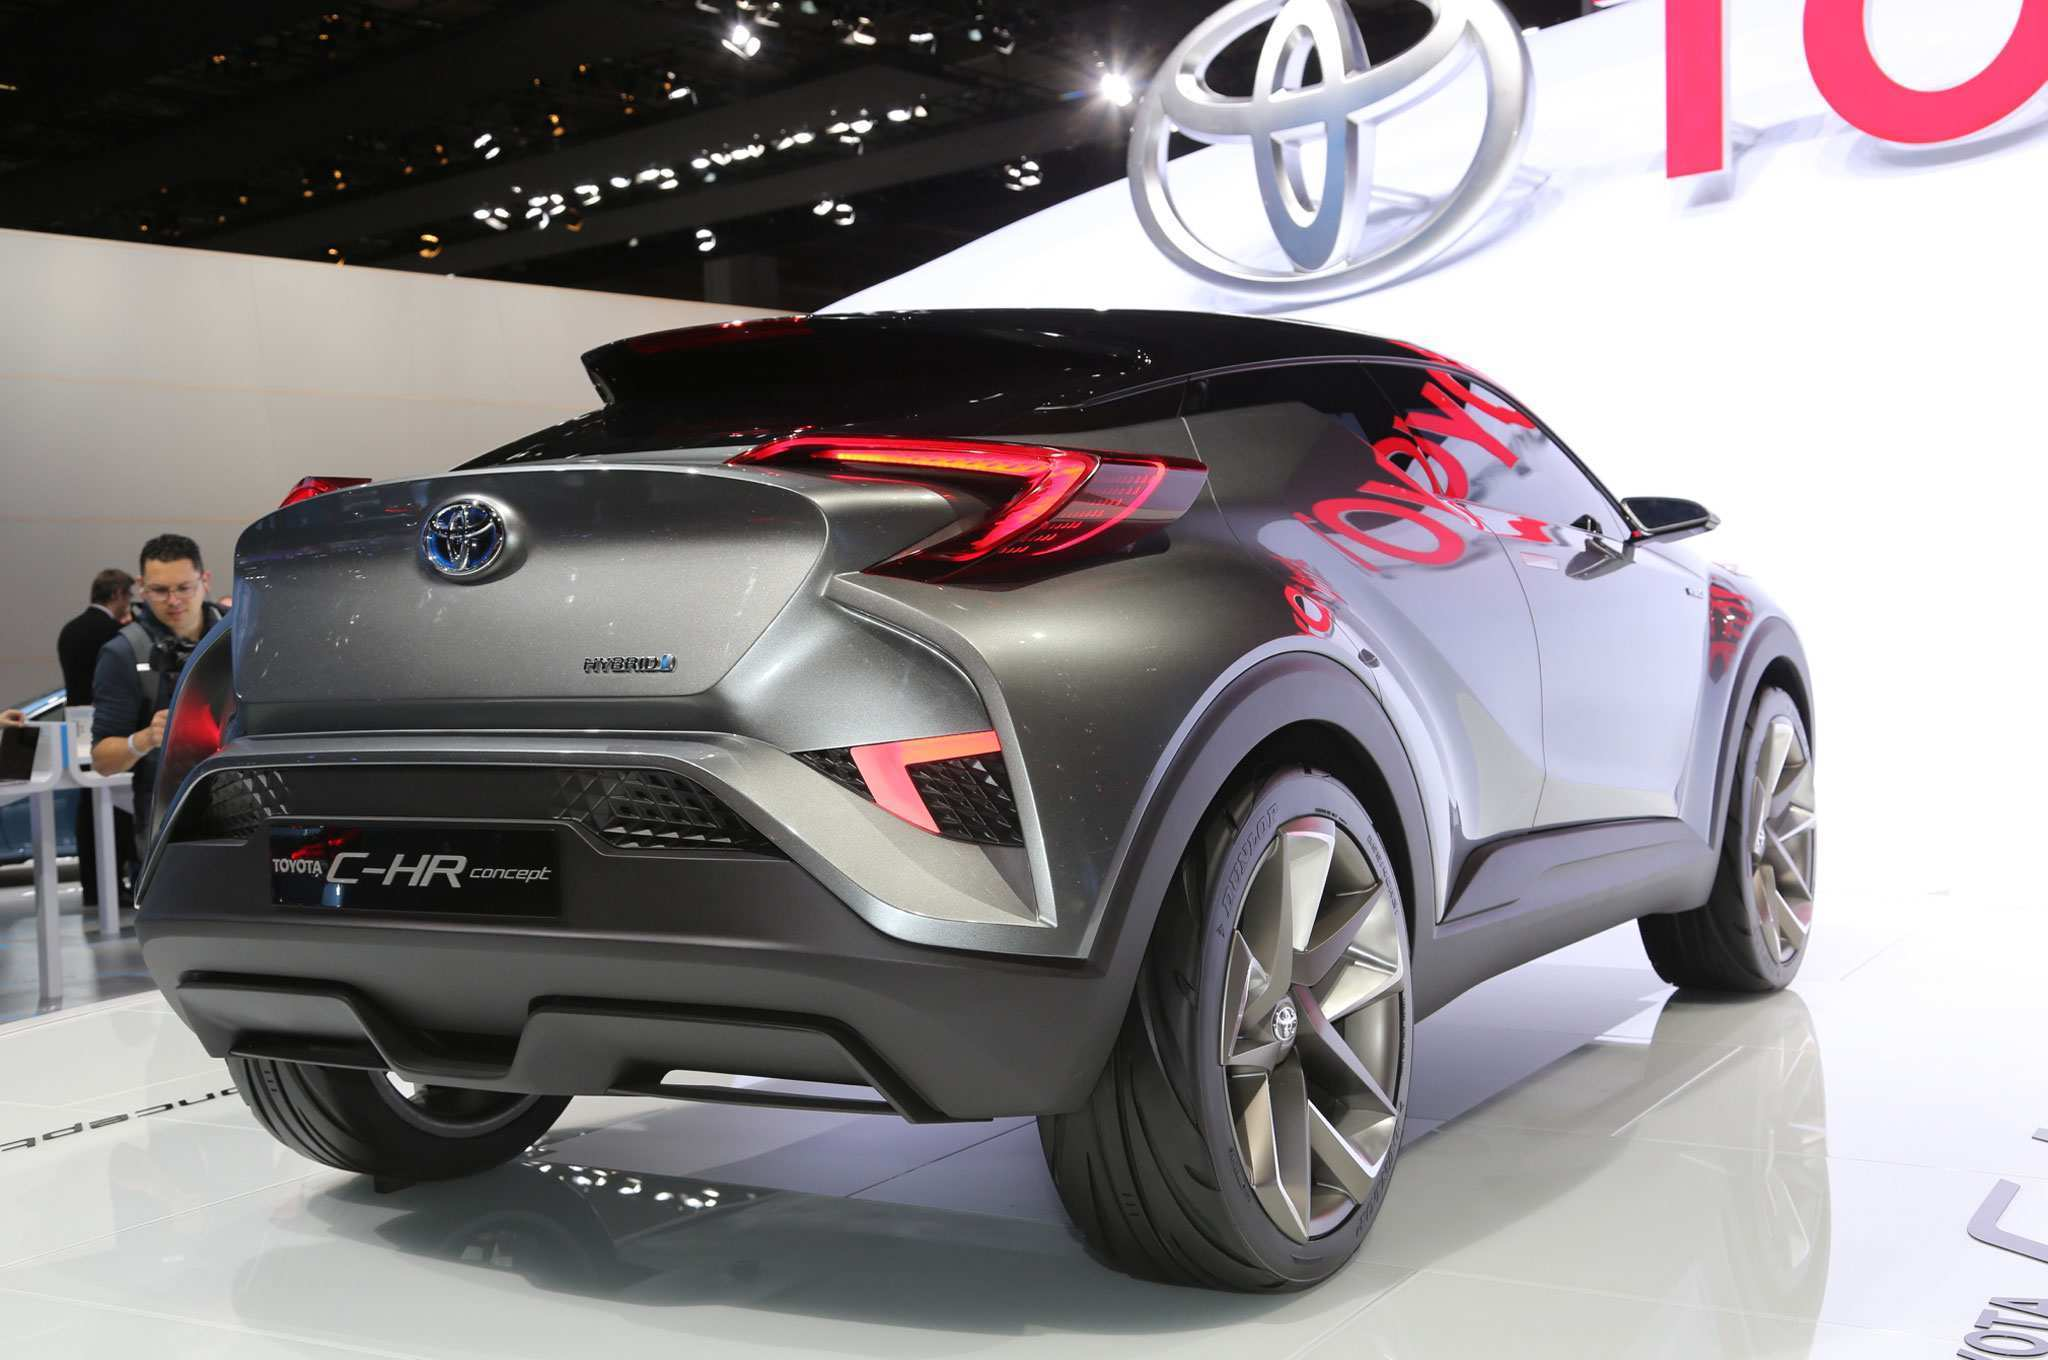 28 All New Chr Toyota 2020 New Concept Reviews with Chr Toyota 2020 New Concept